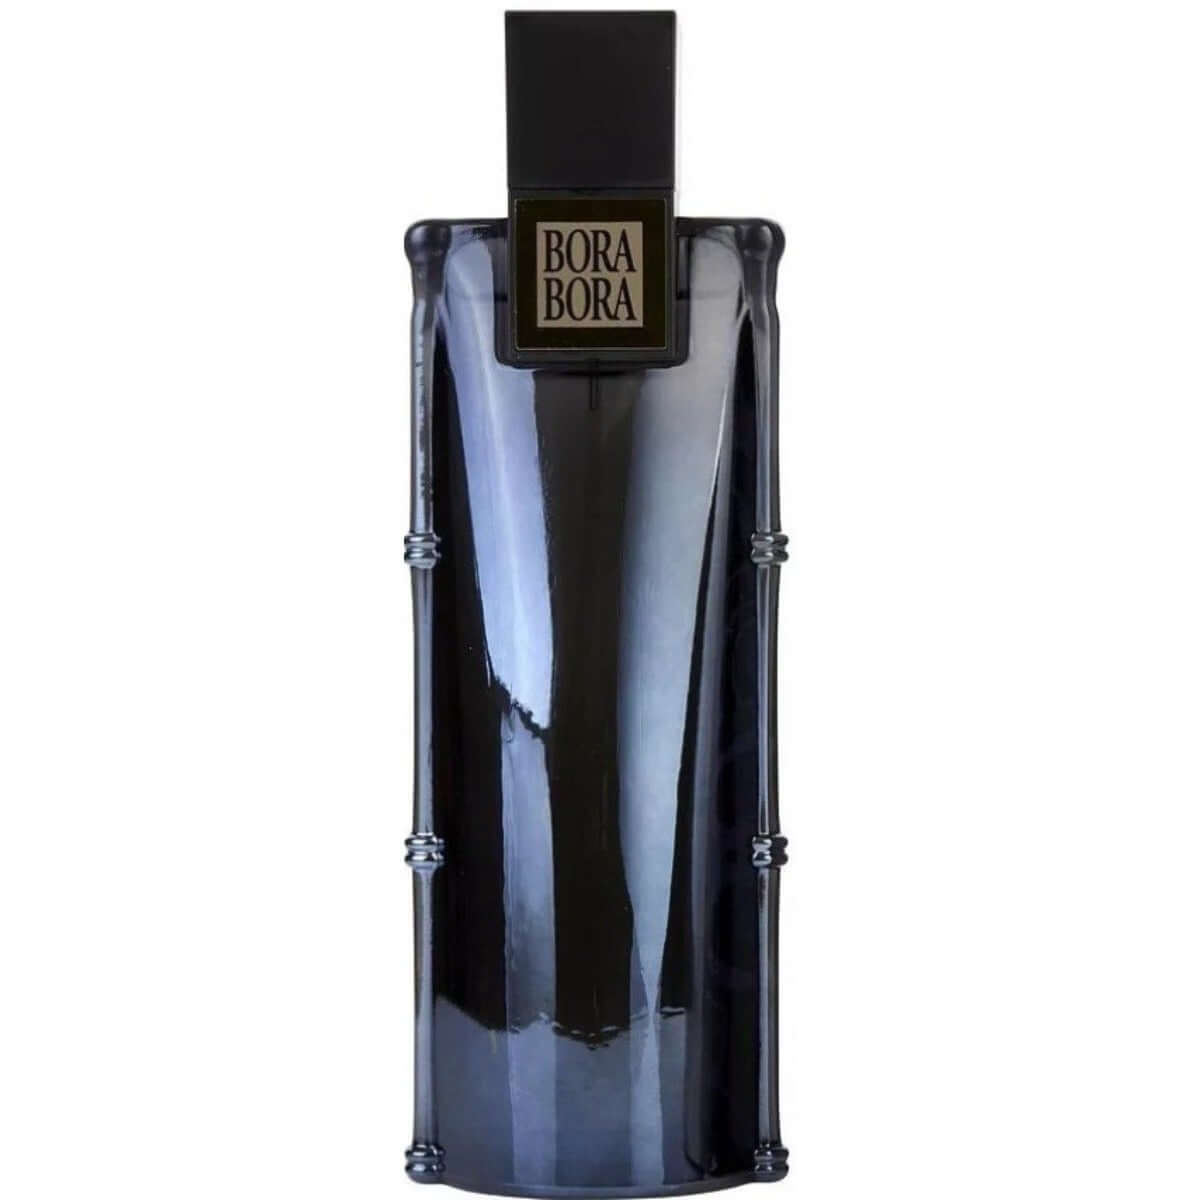 BORA BORA by LIZ CLAIBORNE cologne for Men 3.3 / 3.4 oz New tester